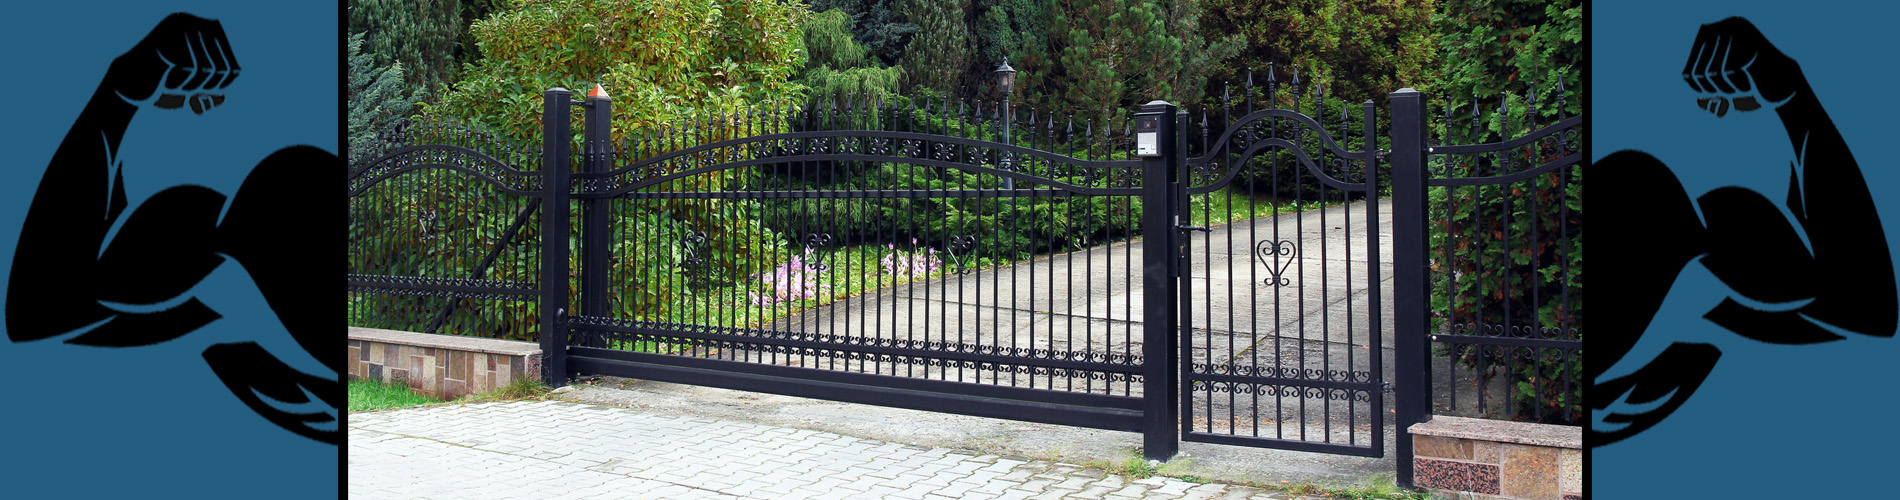 Aluminum Fence Systems- Slide 3